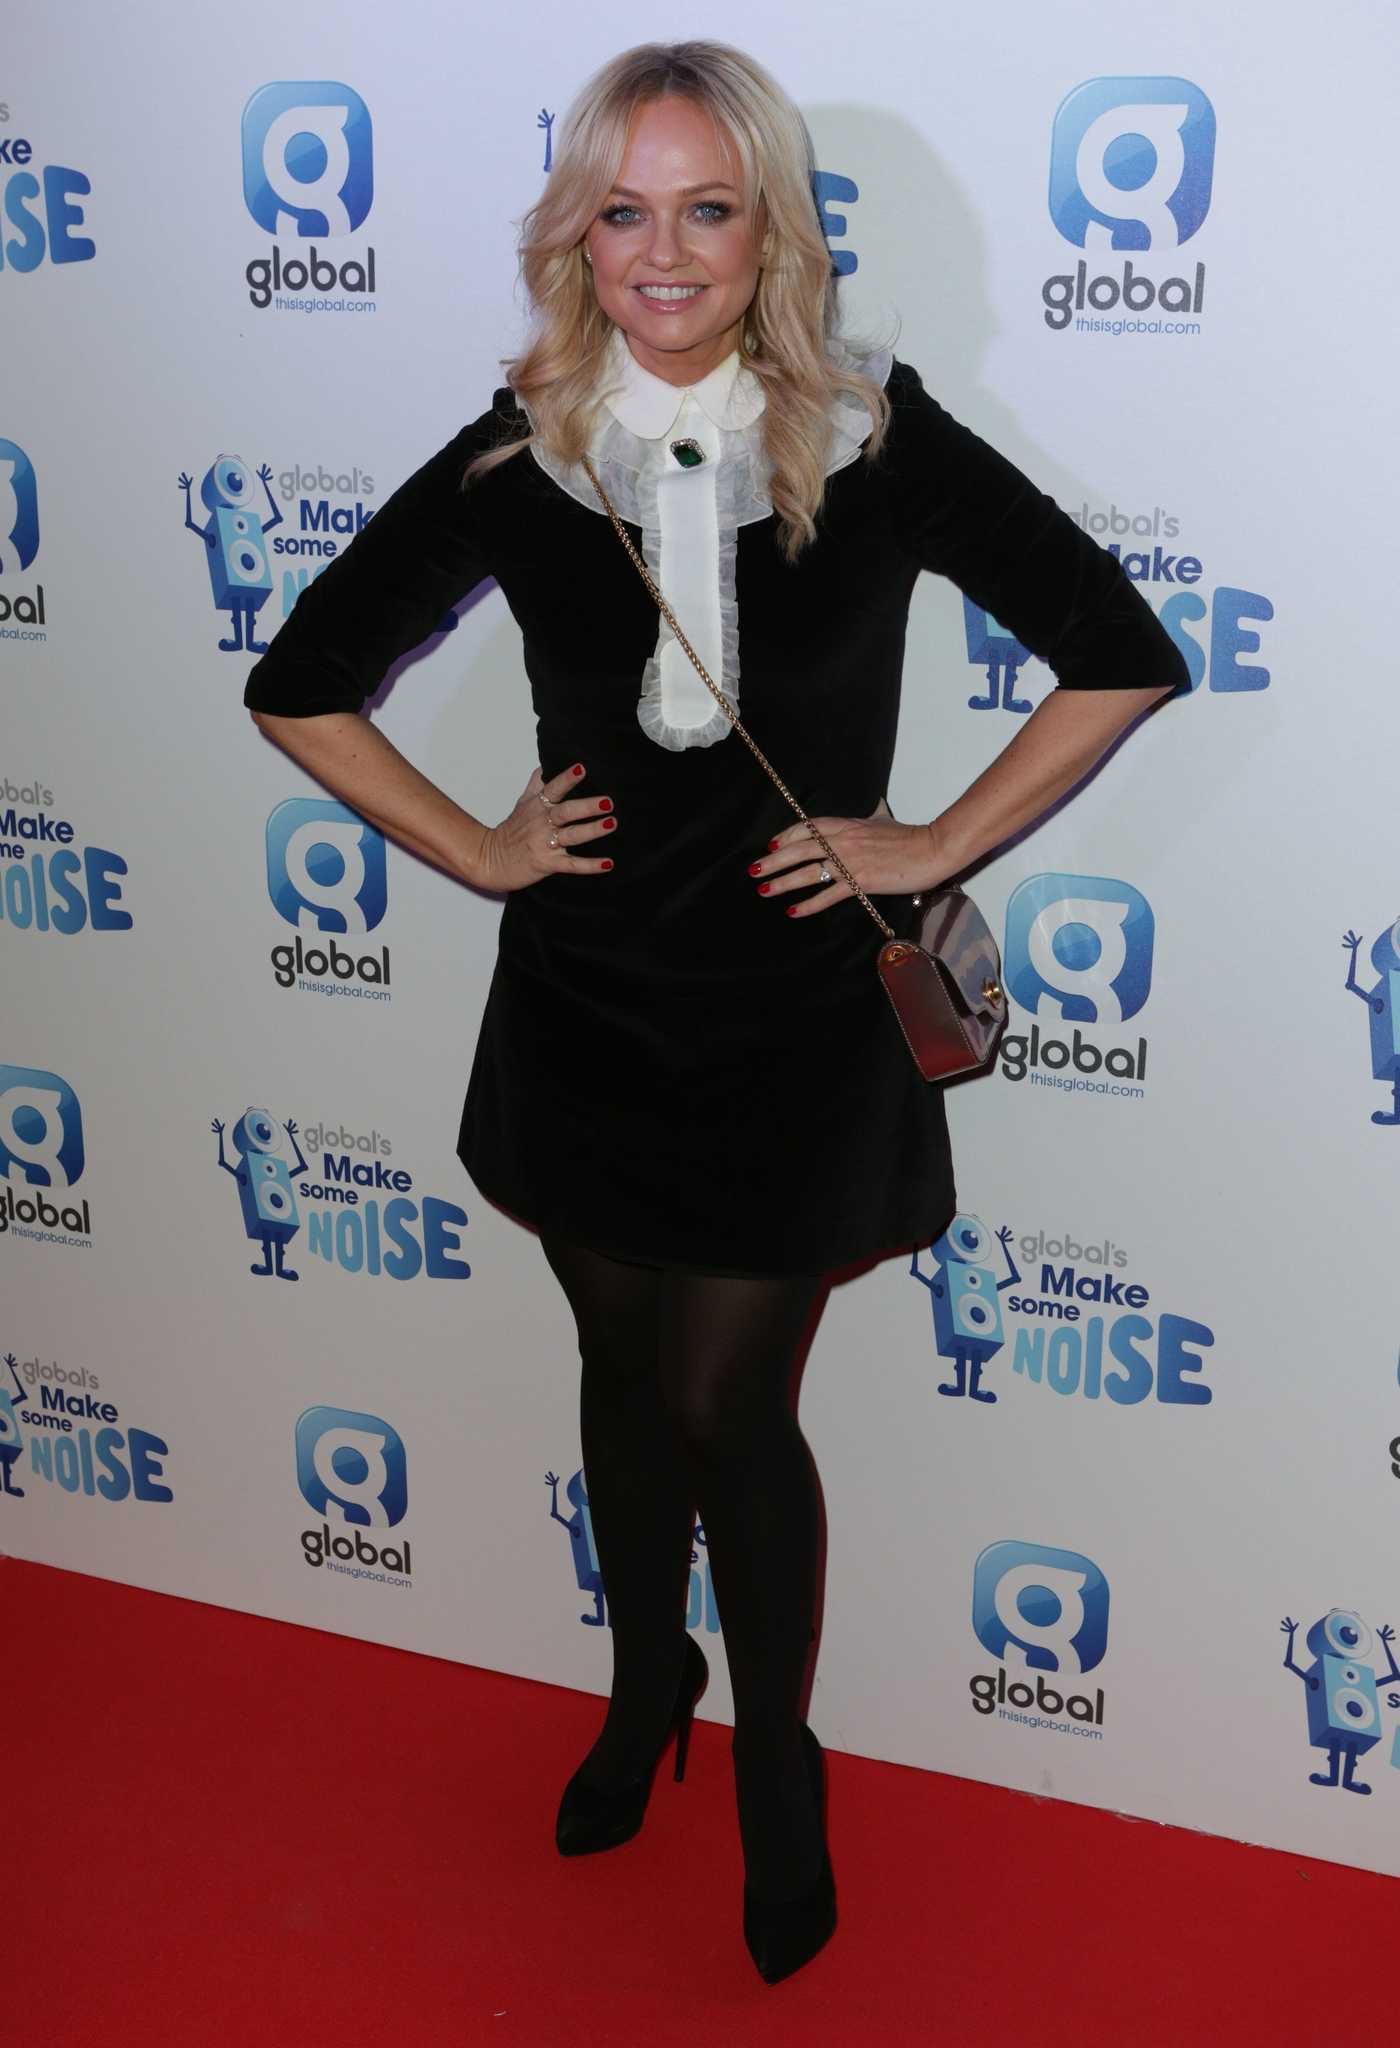 Emma Bunton at the Global's Make Some Noise Night Gala in London 11/24/2016